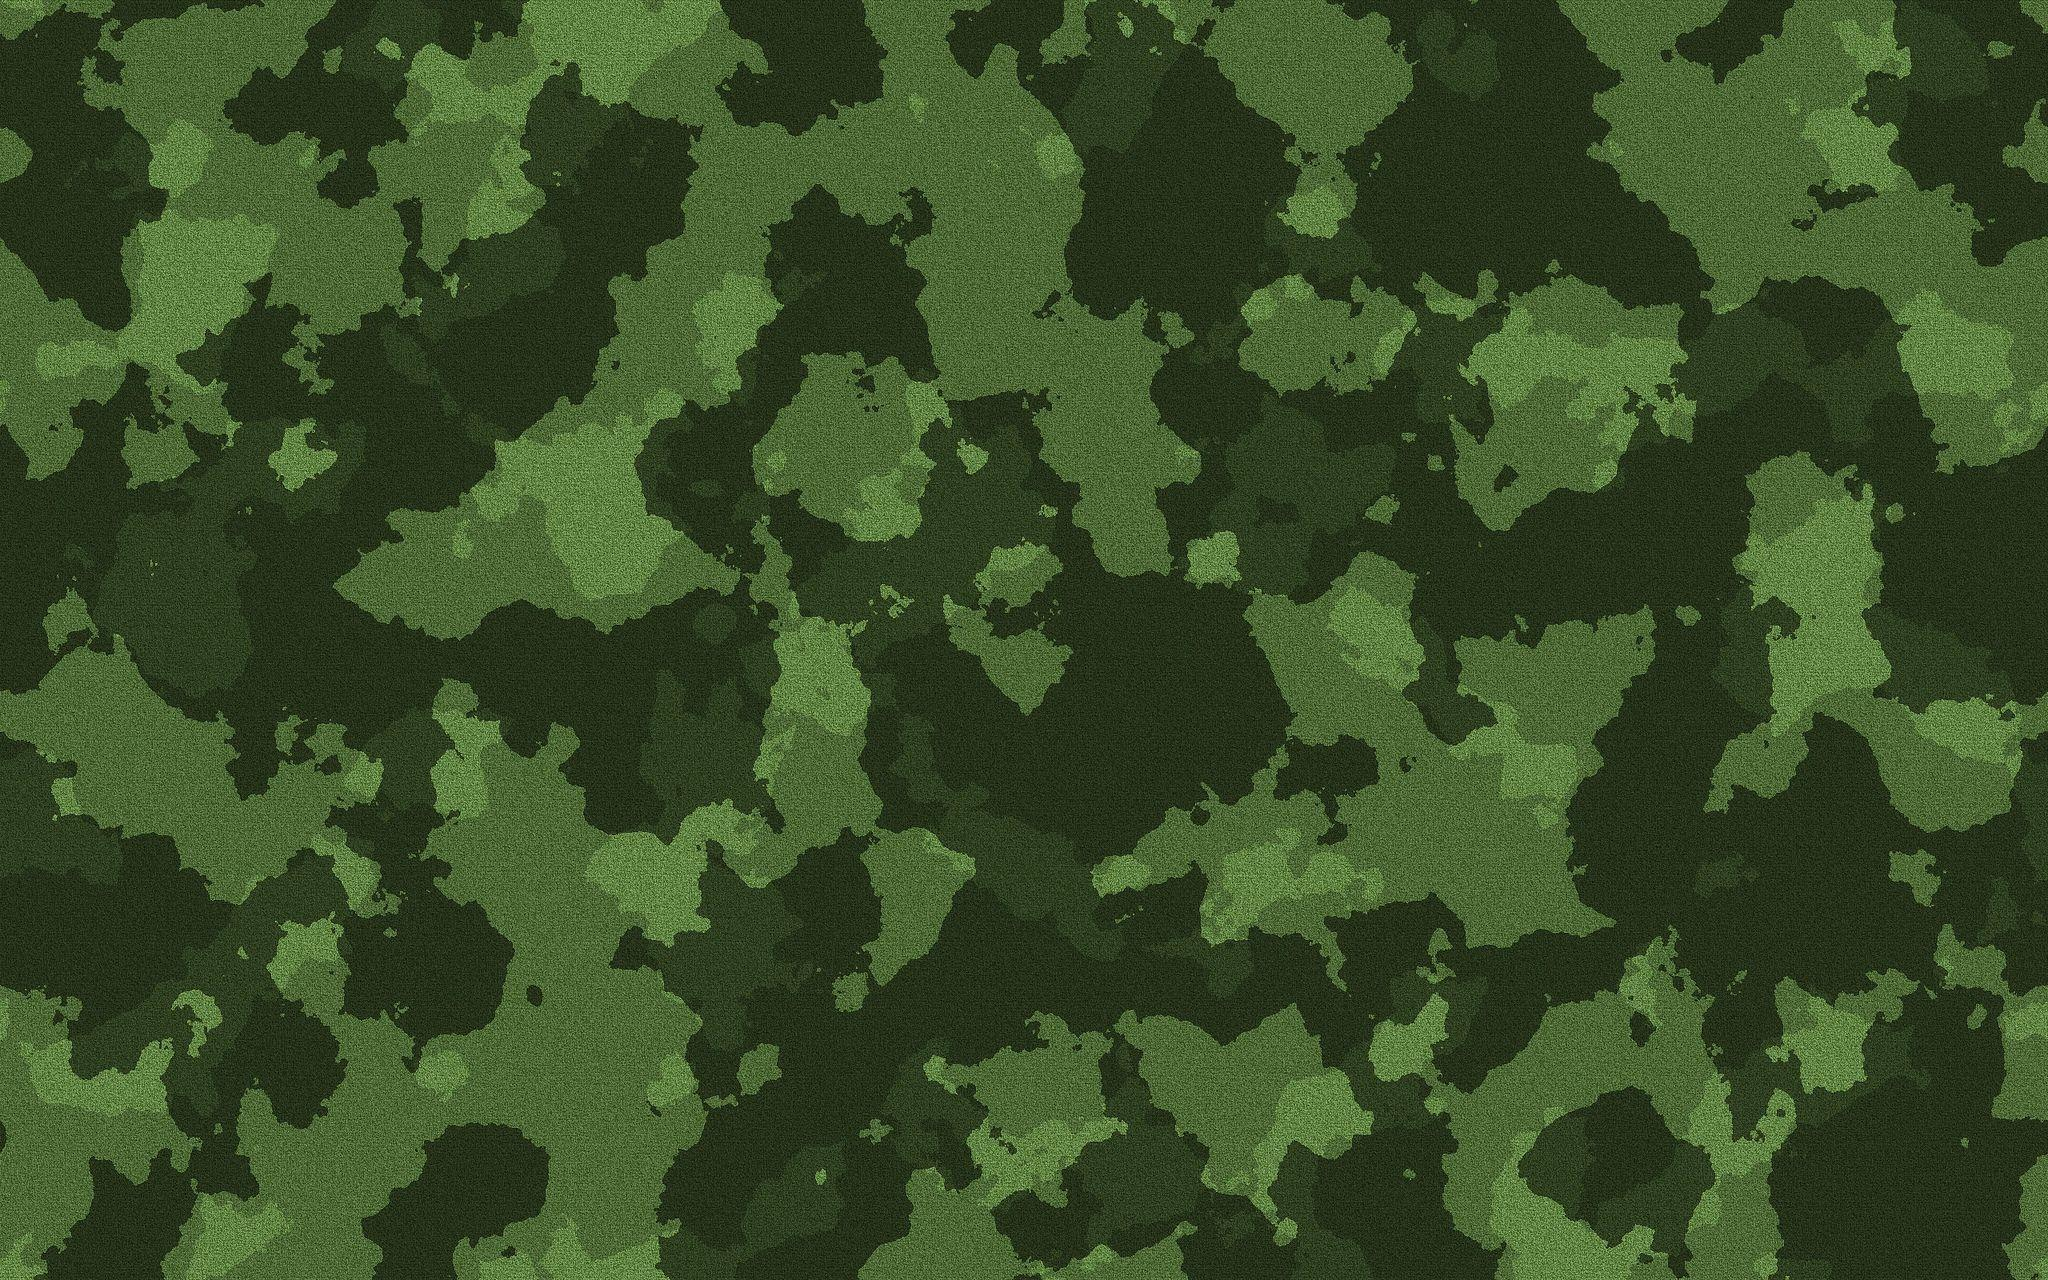 Camouflage Green Army Texture | Photo Texture & Background